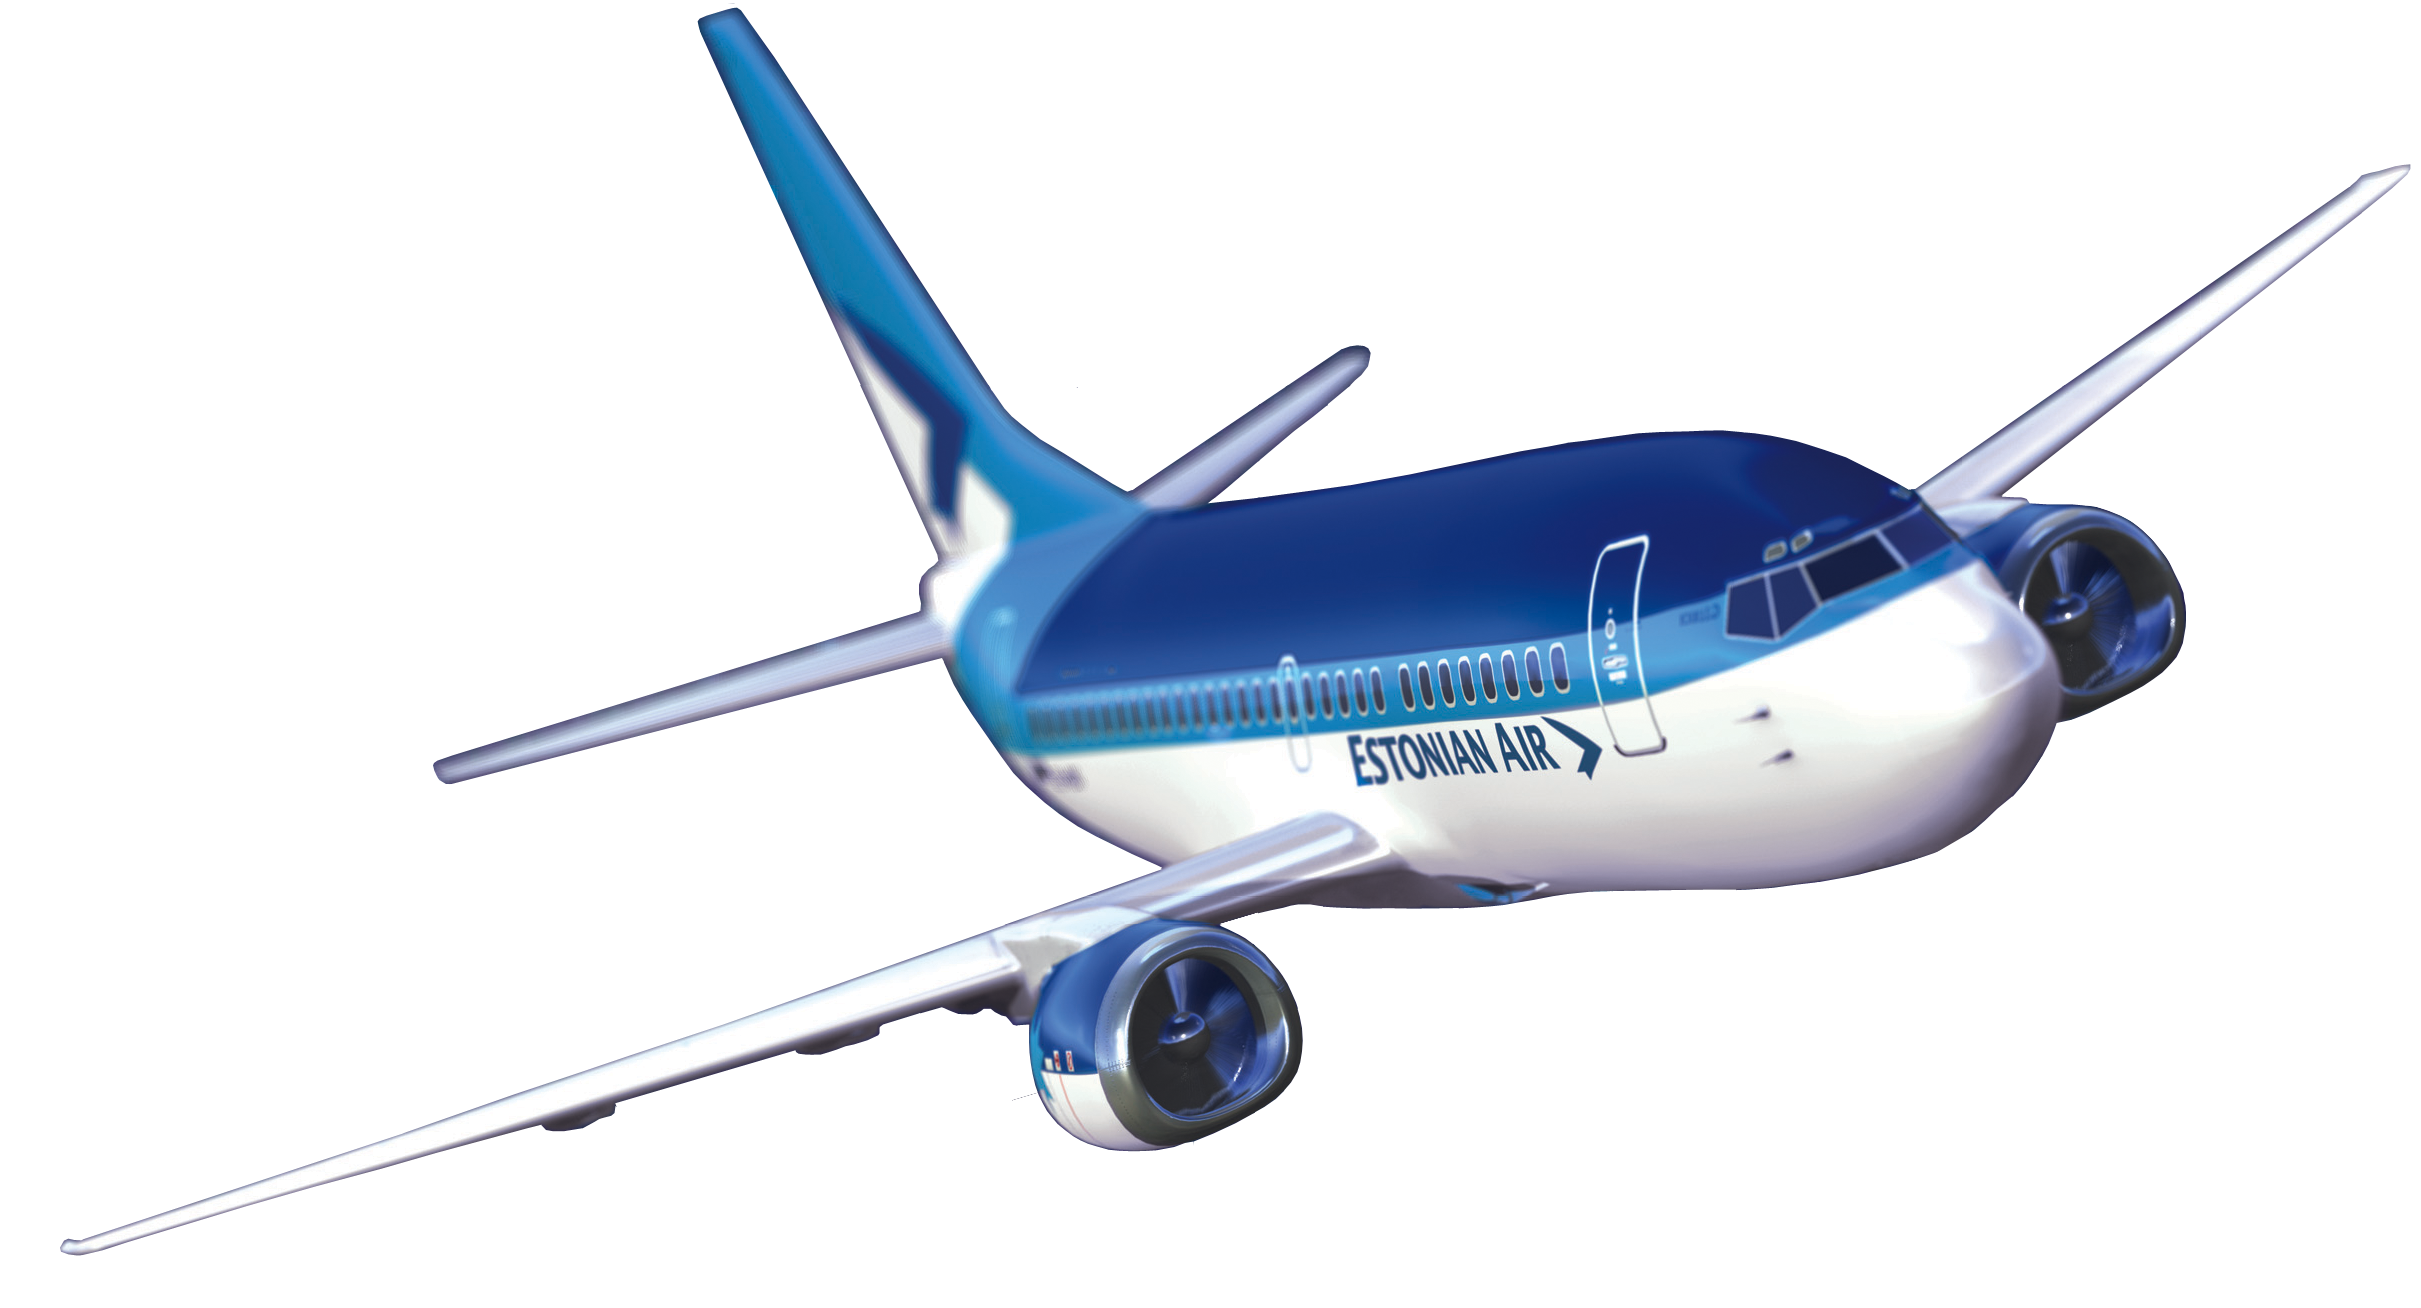 Boeing PNG plane image - PNG HD Airplane